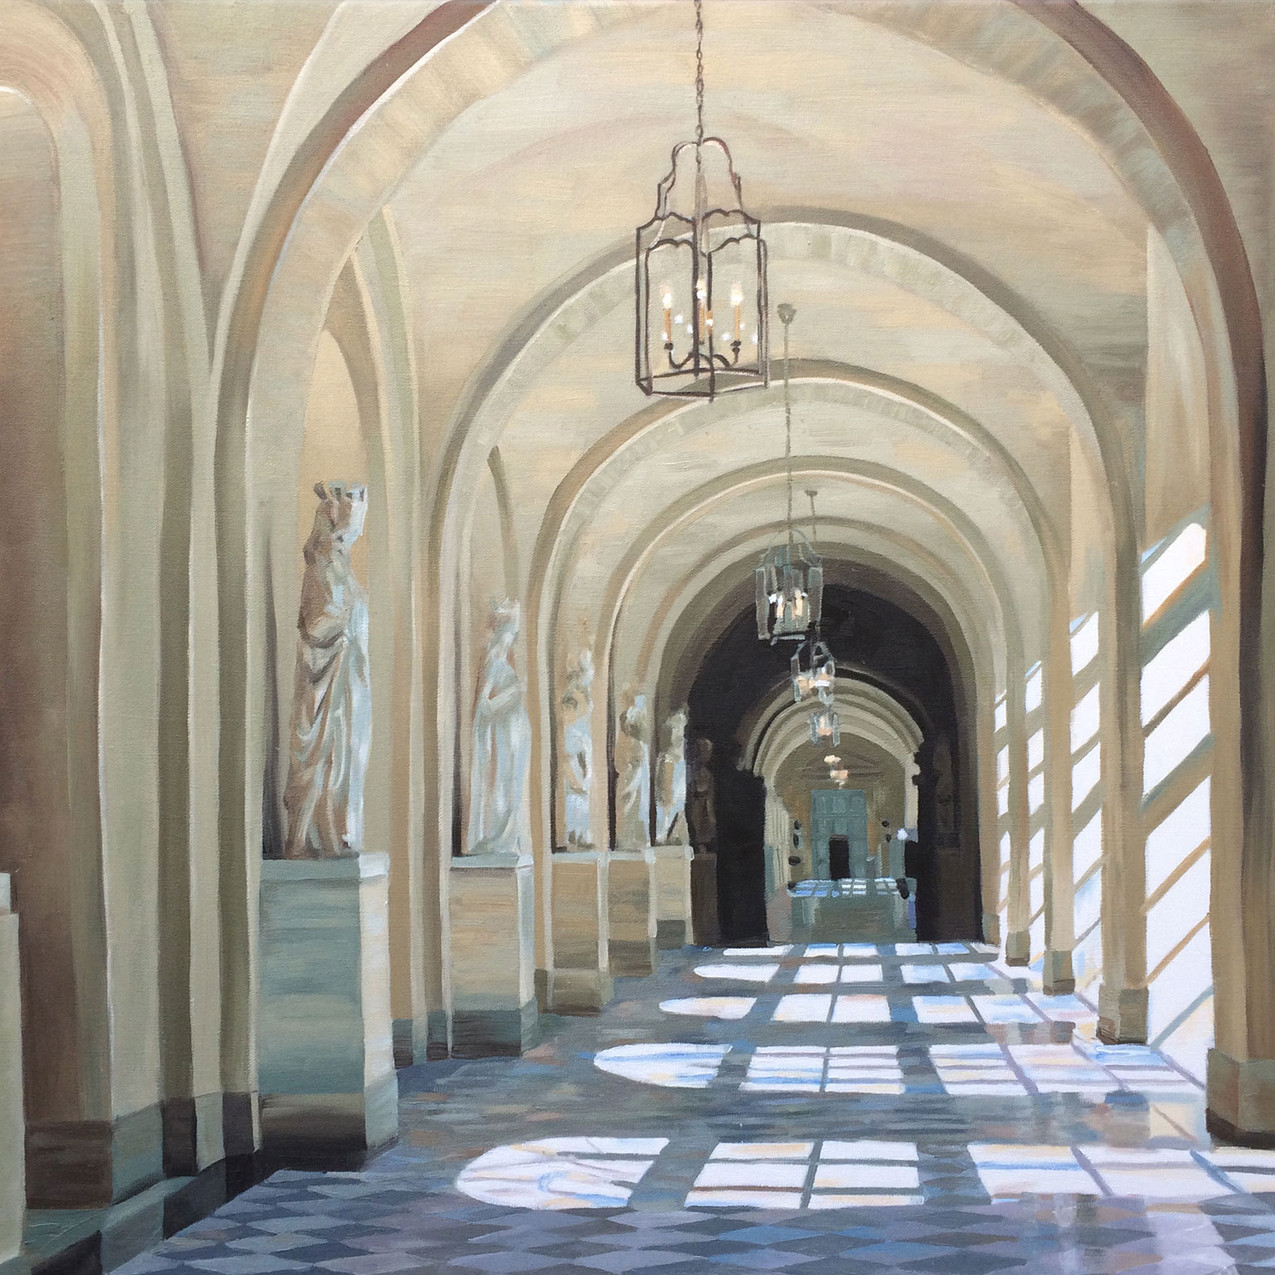 The Hallway (Palace of Versailles)